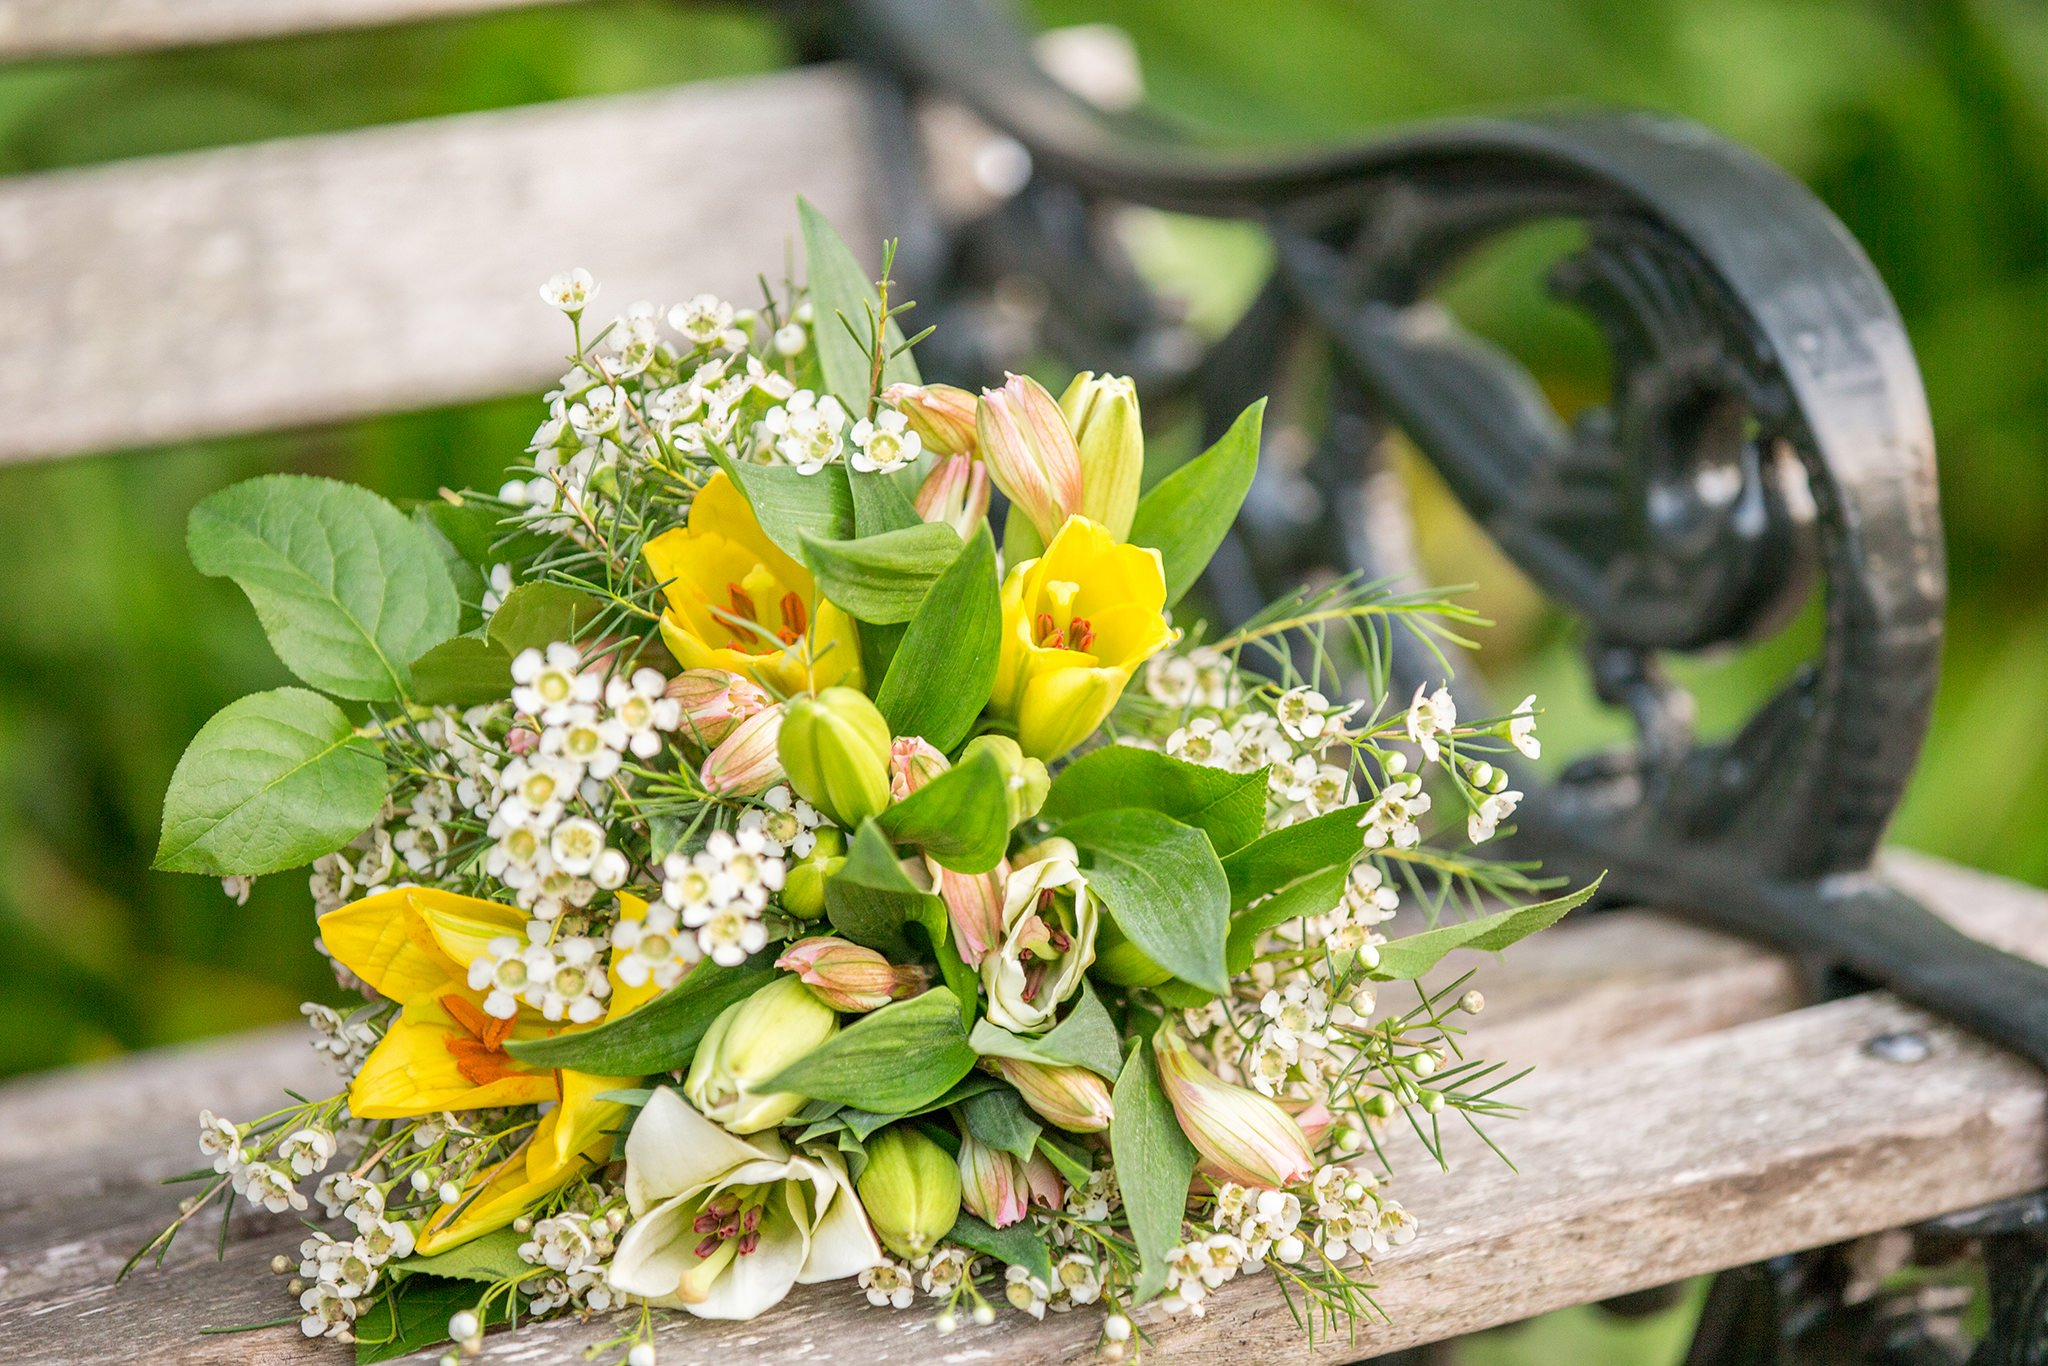 The bouquet composed of greenery, white and yellow flowers lies on the bench